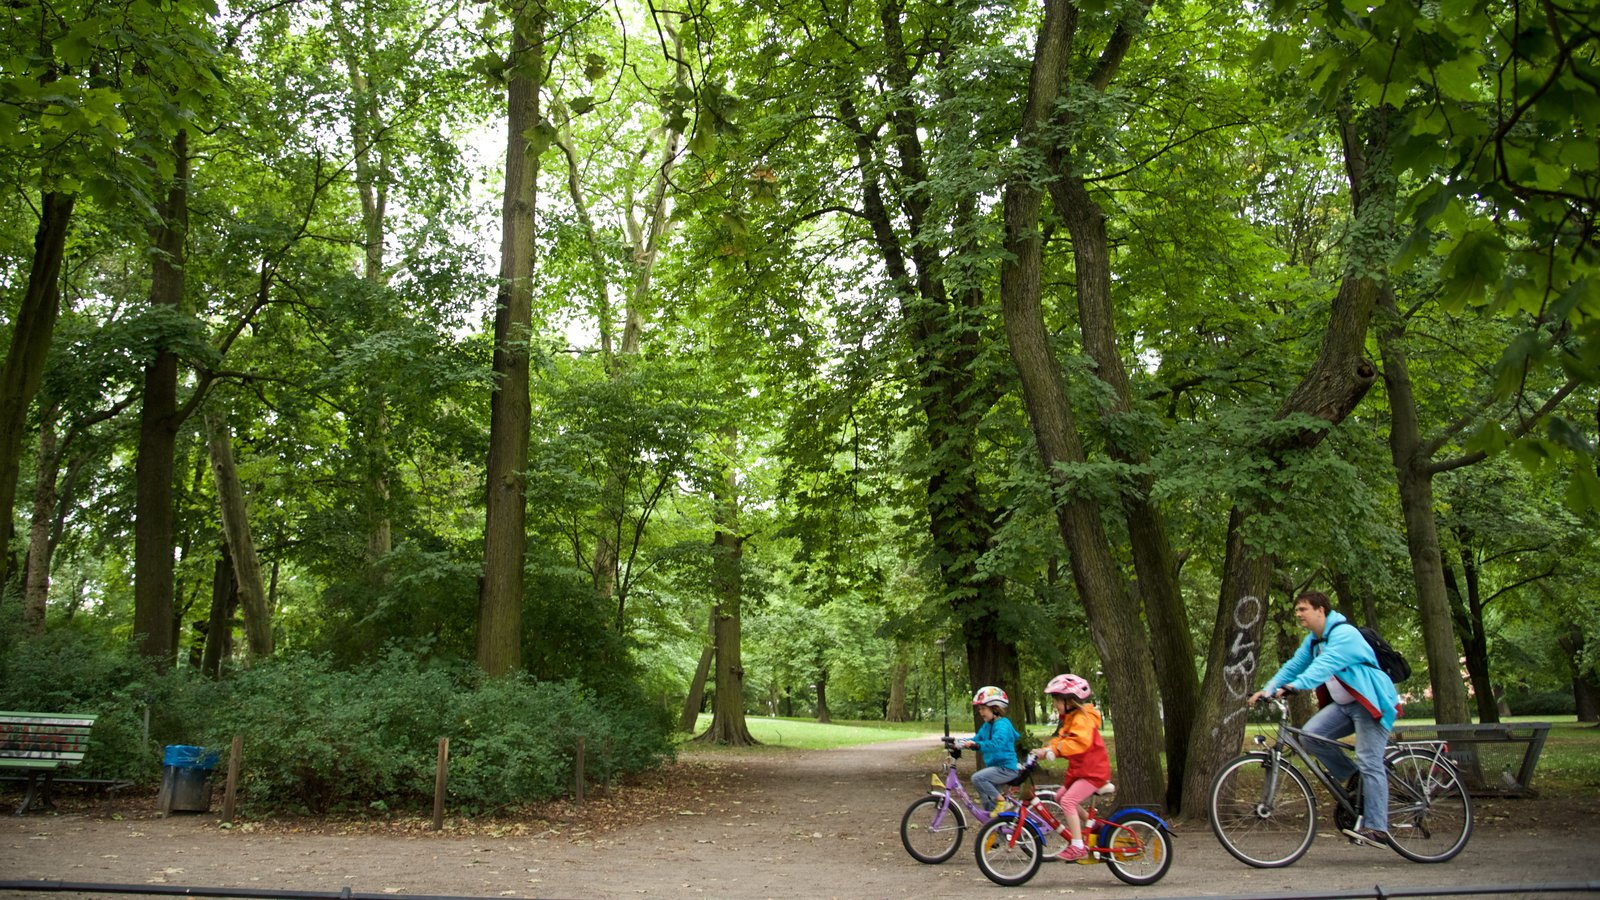 Weissensee showing cycling and a garden as well as a family